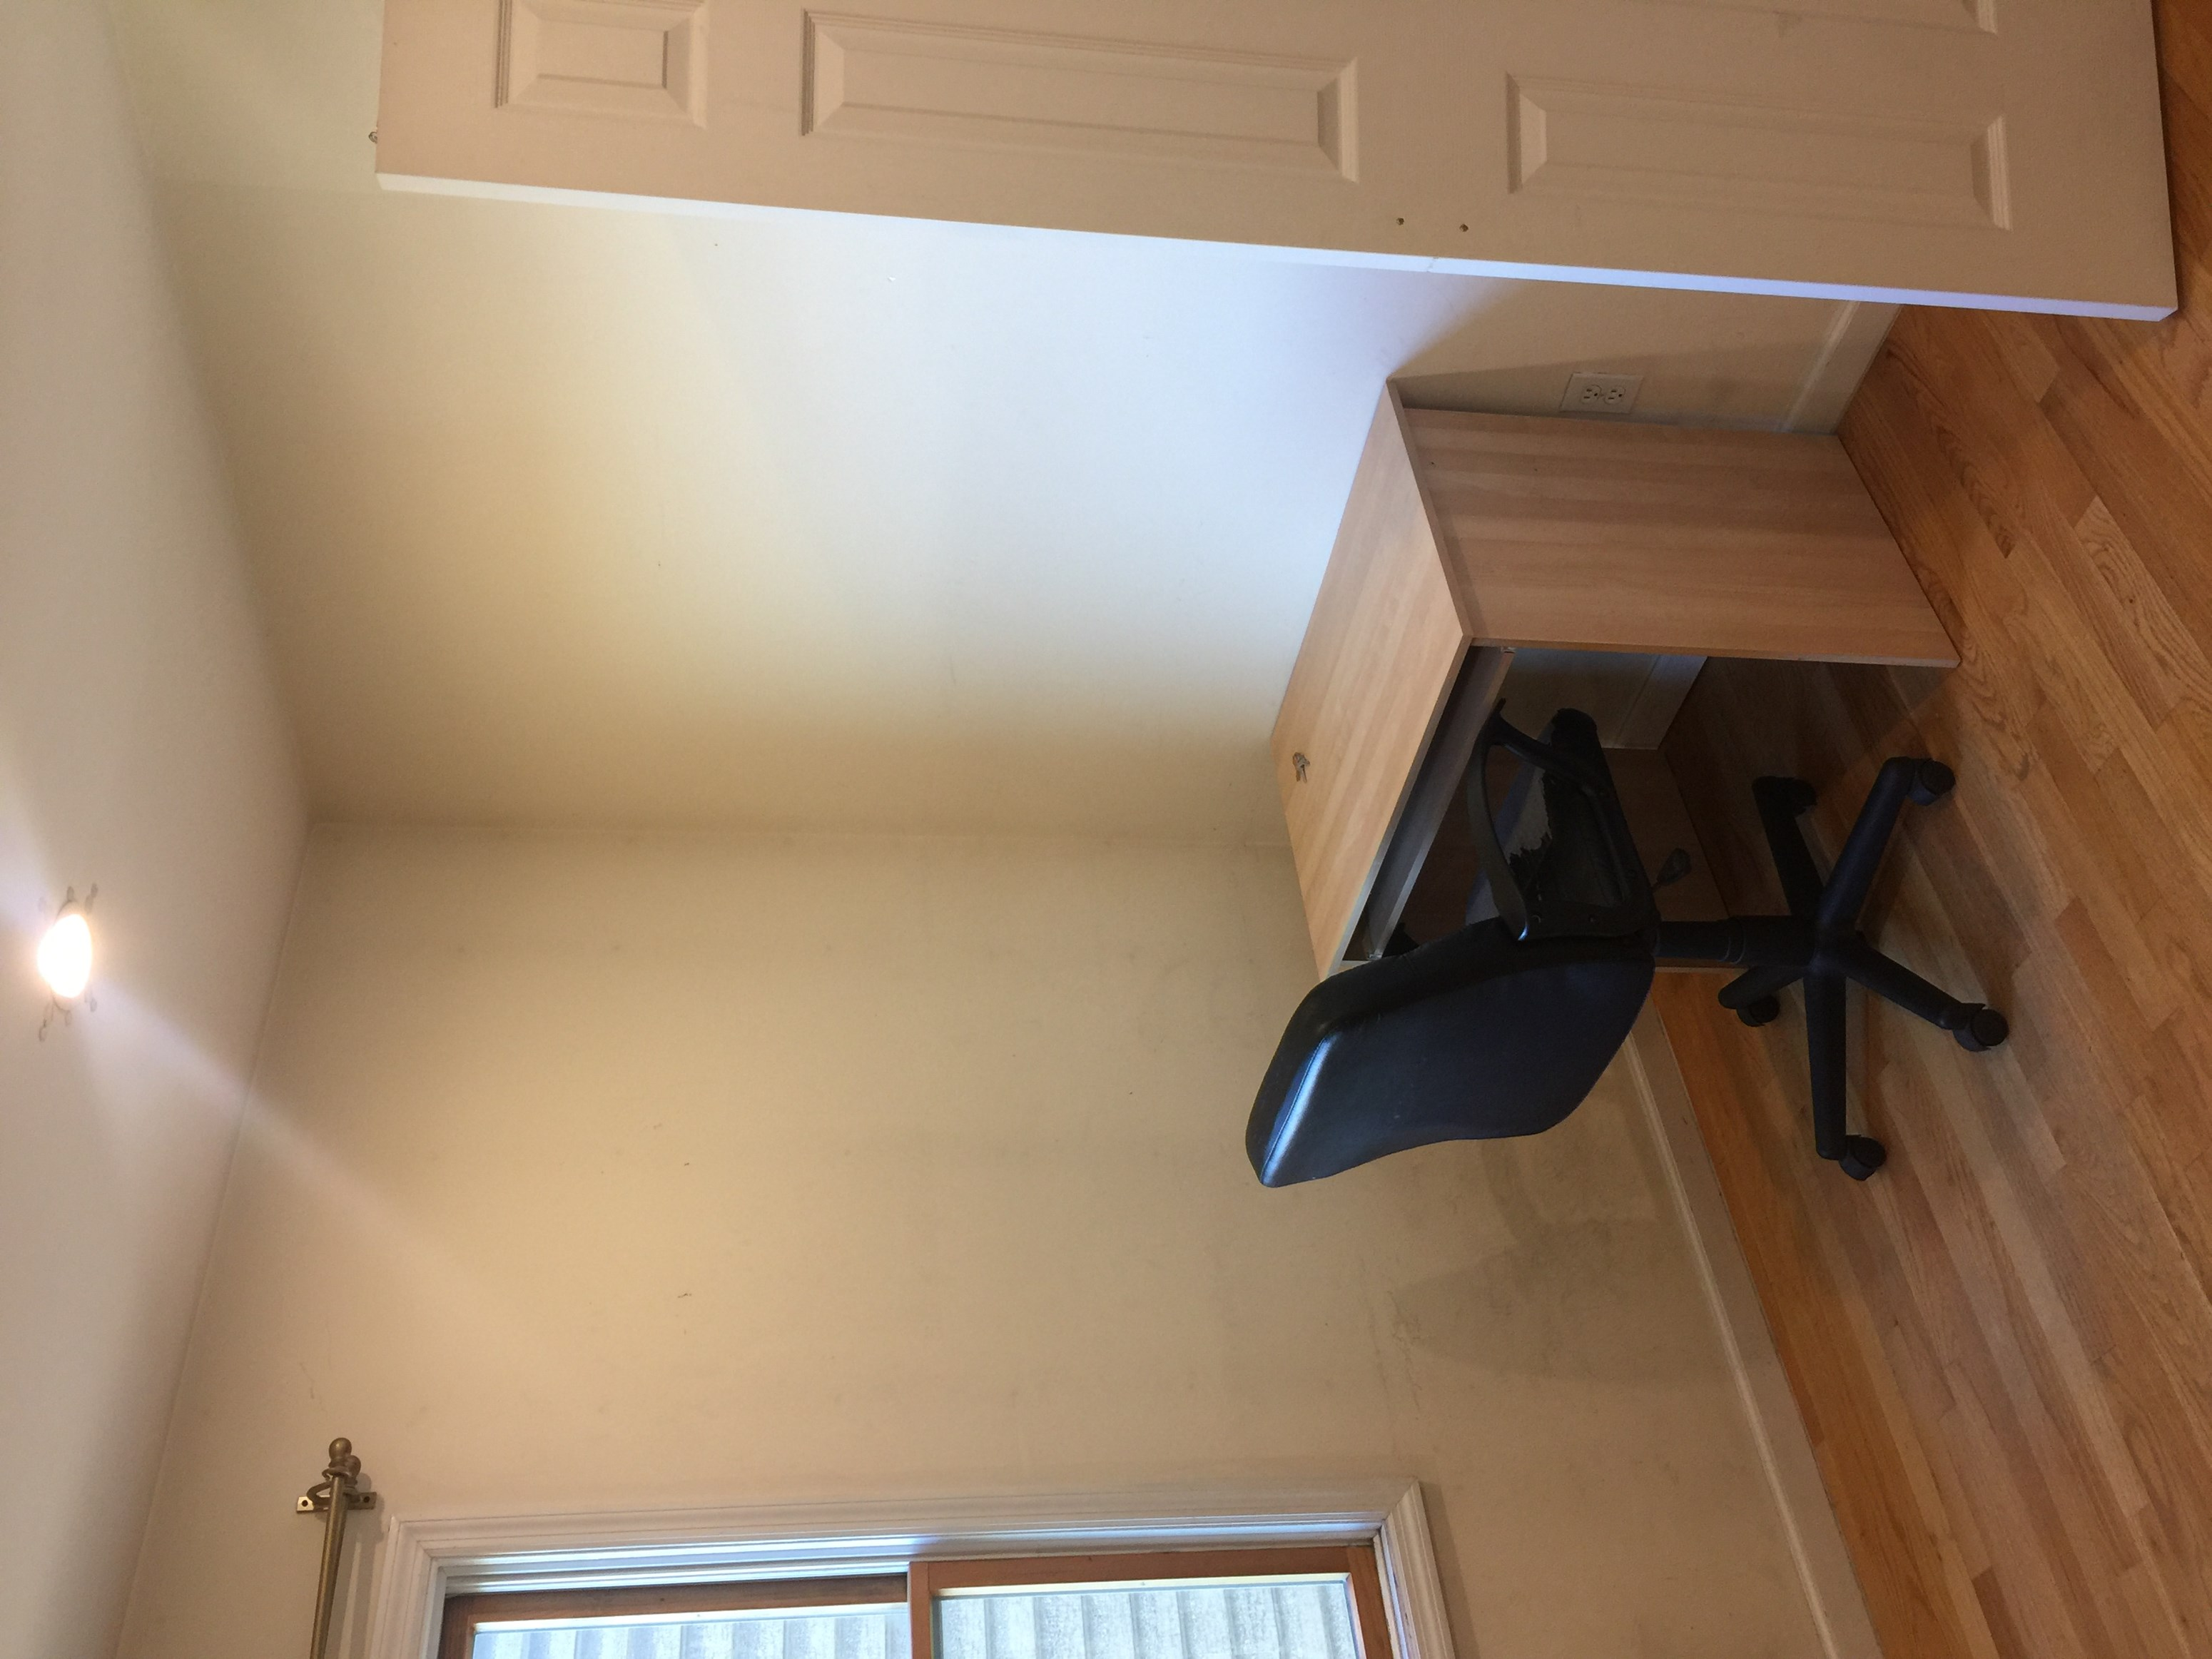 breaking lease in woodbridge terrace   1br apartment   1 bhk in. 2 Bedroom Apartments In Linden Nj For  950 Awesome Design